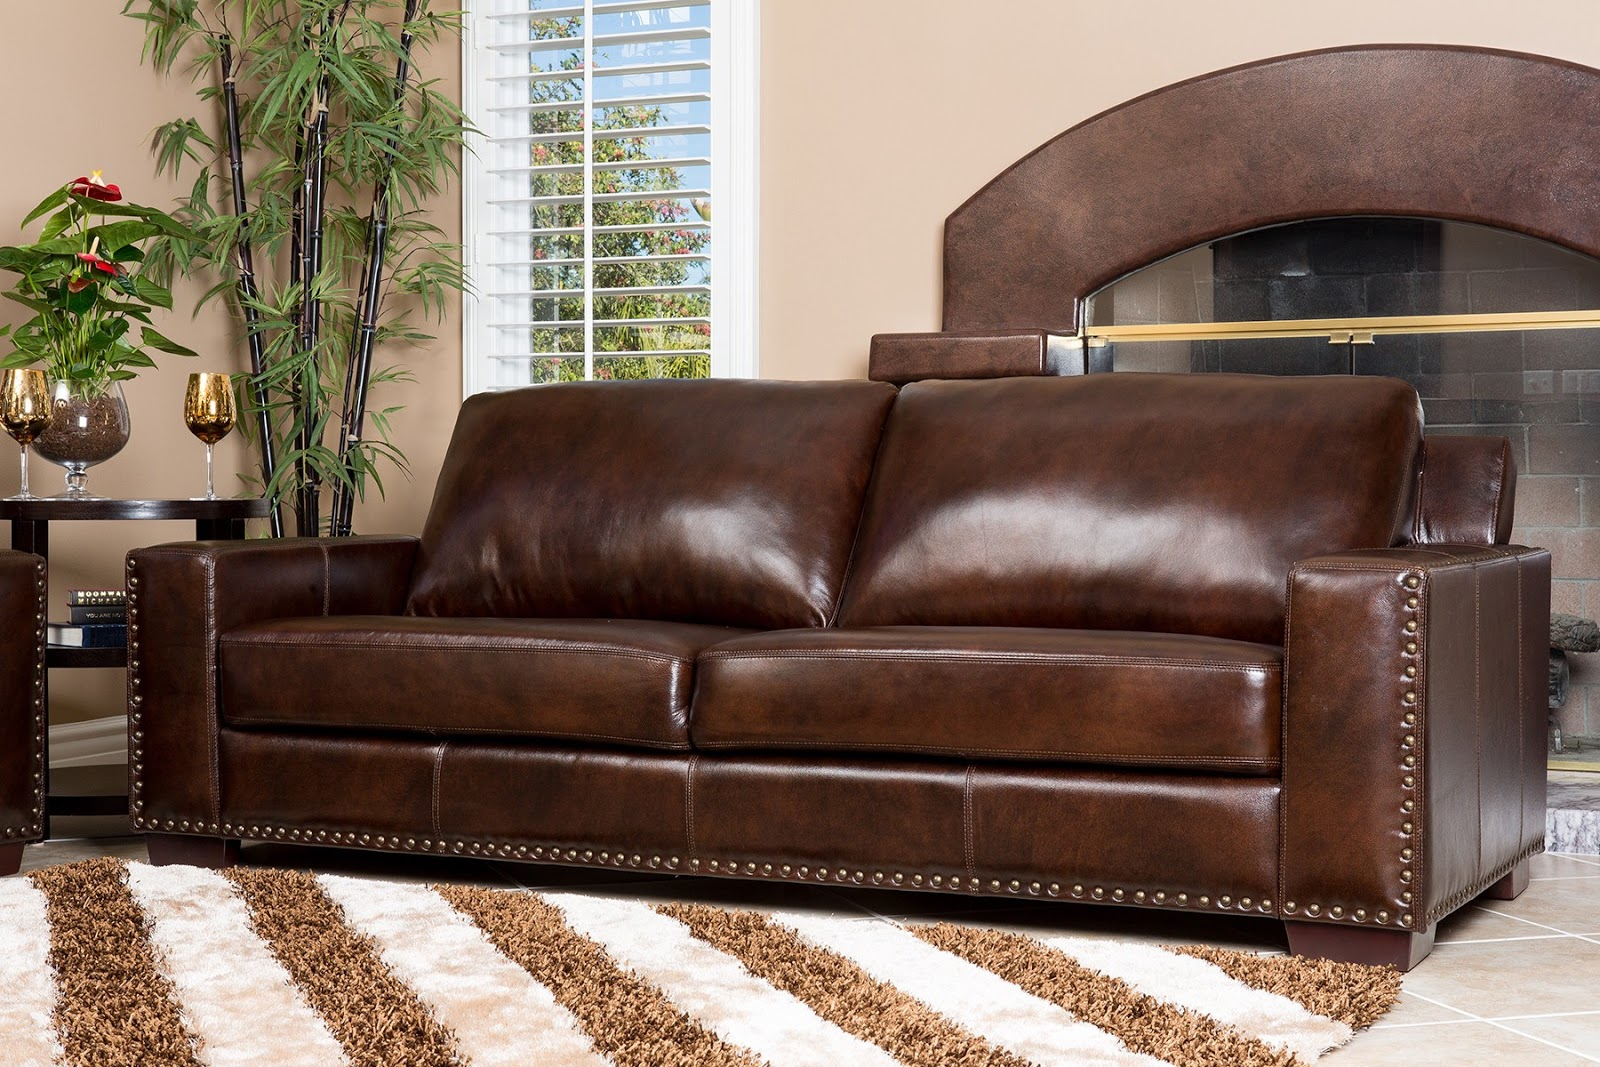 san-diego-upholstery-cleaning